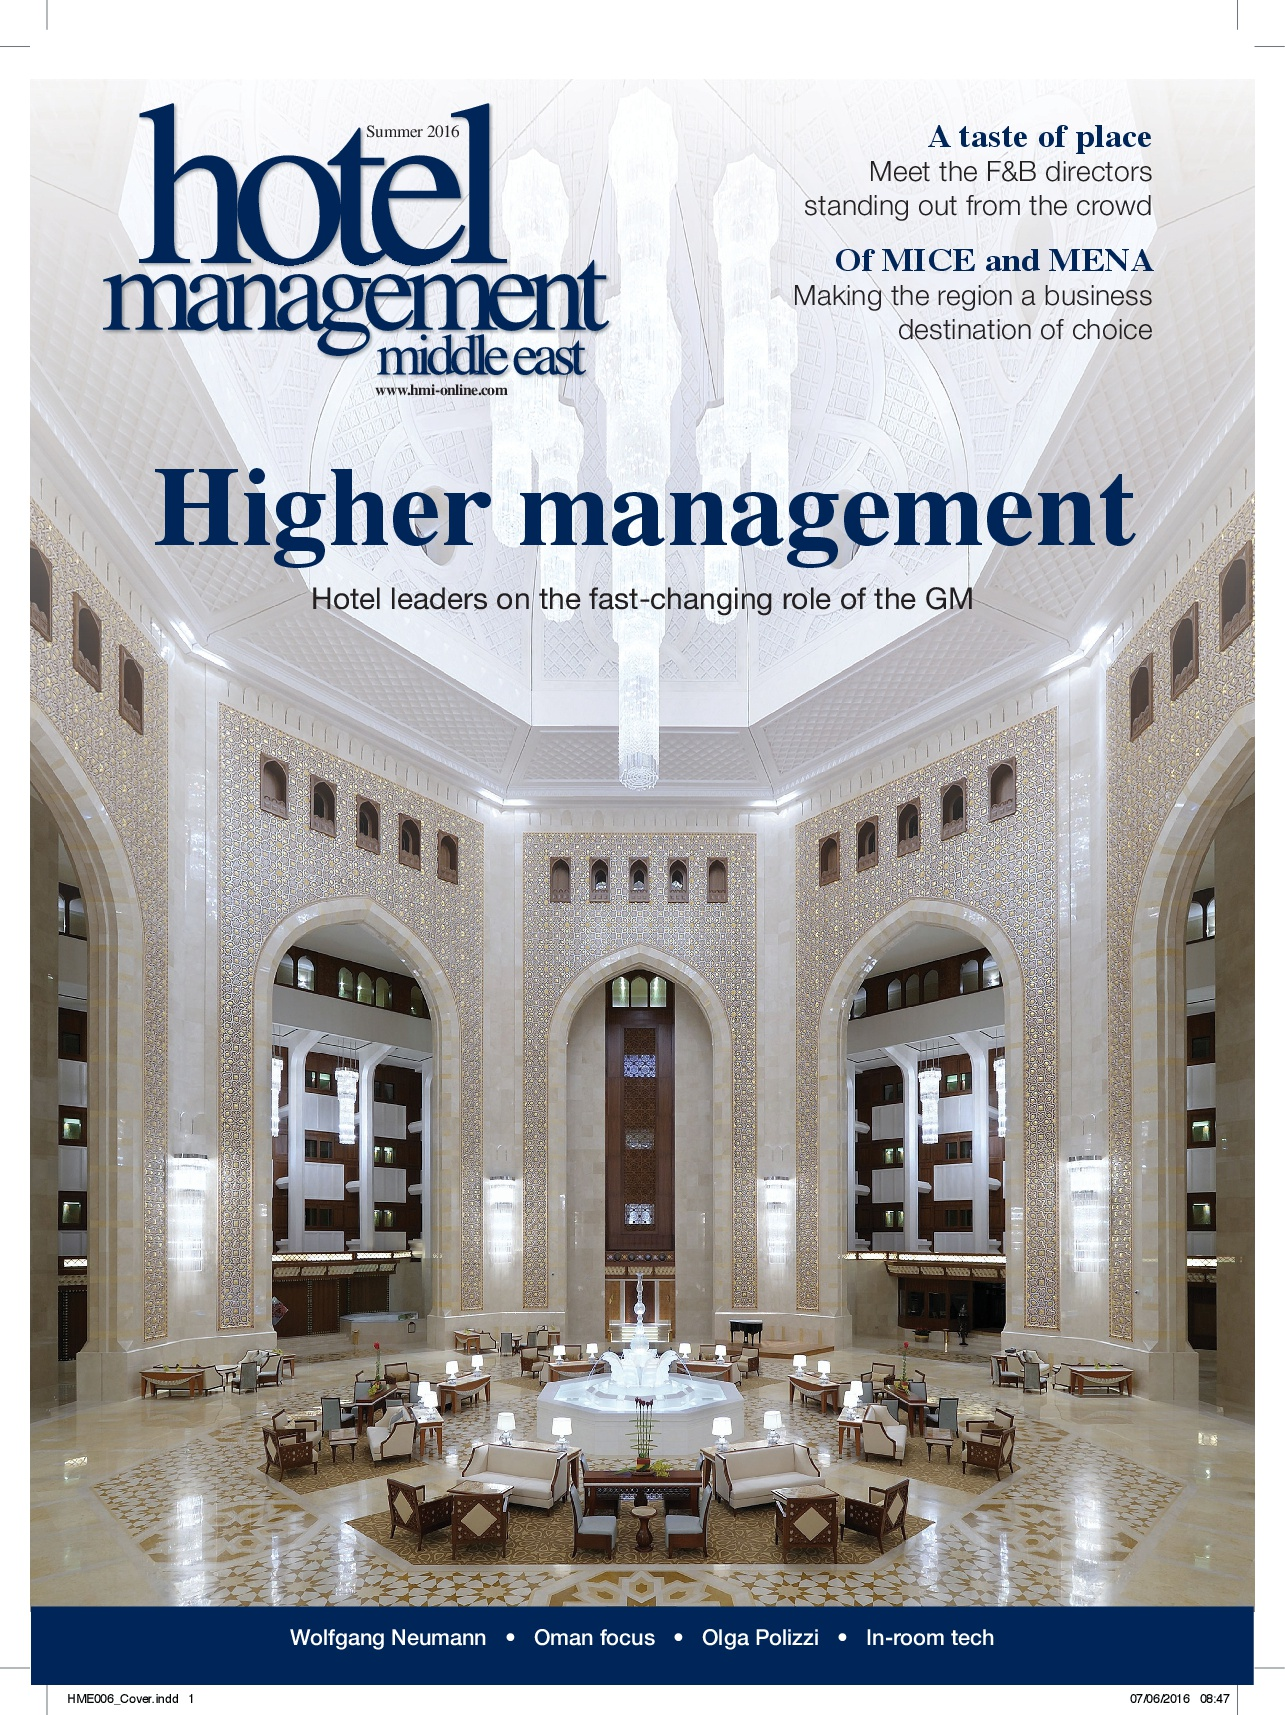 Hotel Management Middle East Summer 2016